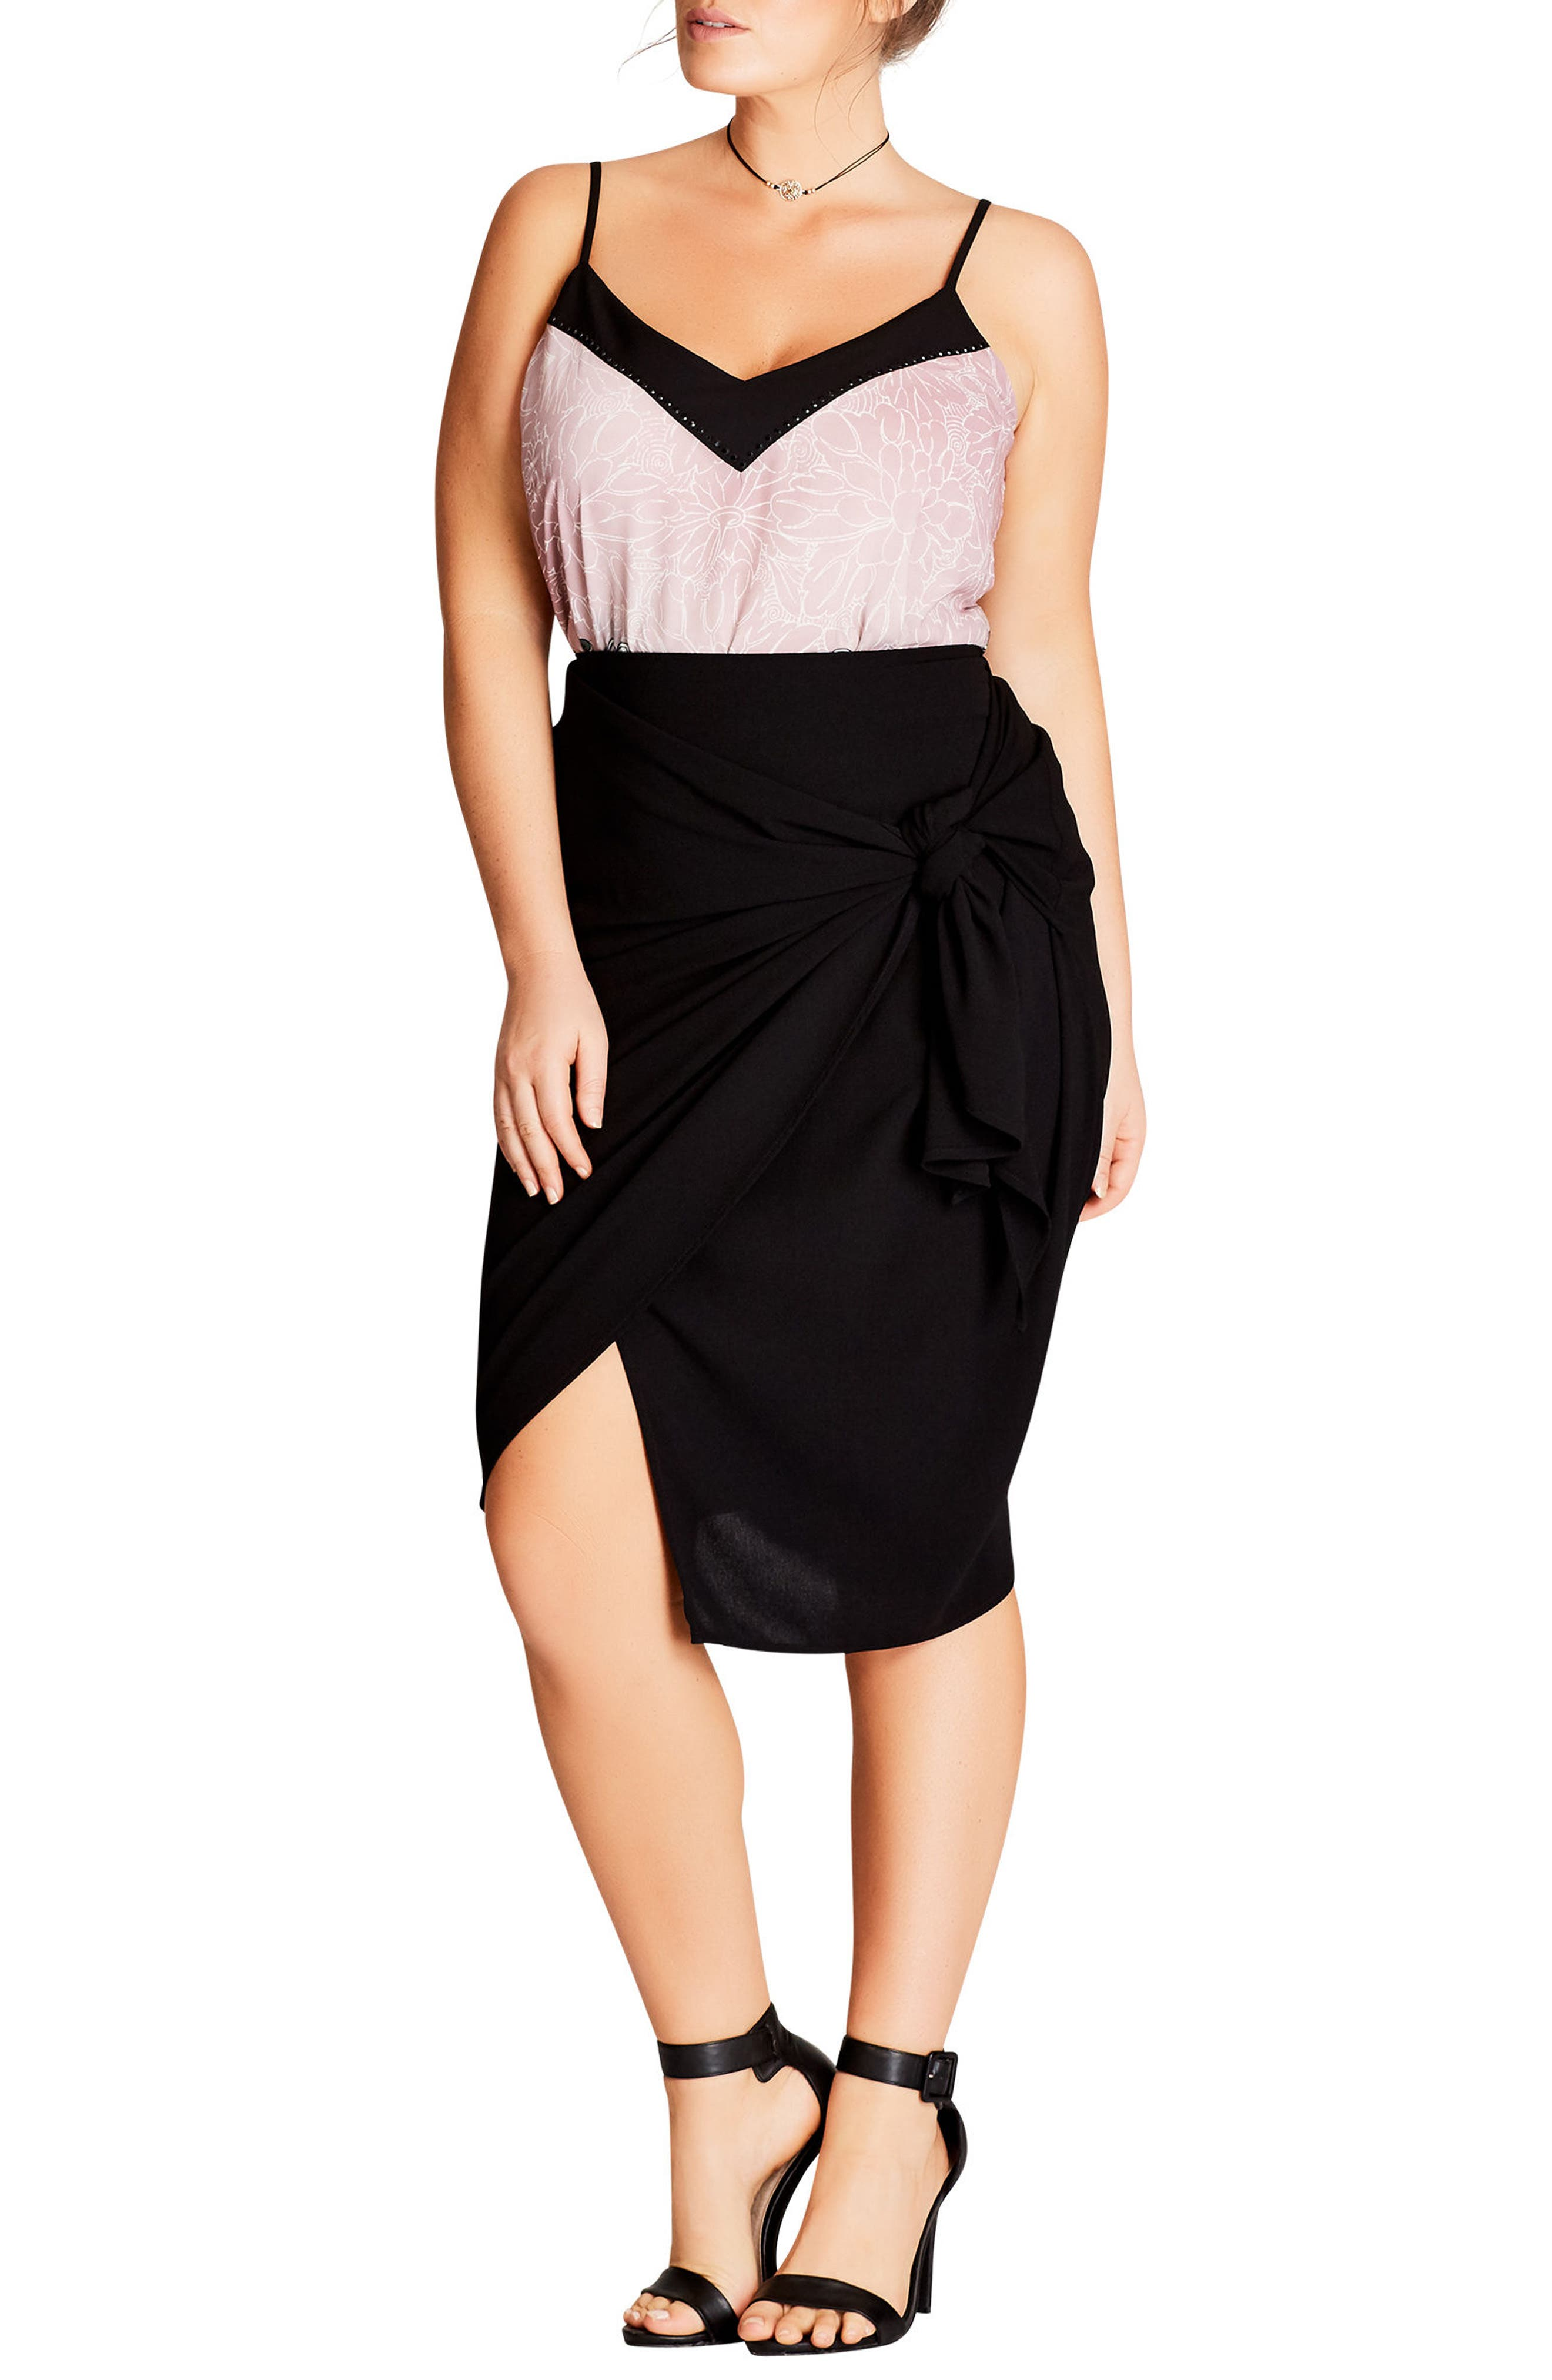 Alternate Image 1 Selected - City Chic Wrapped Up Pencil Skirt (Plus size)